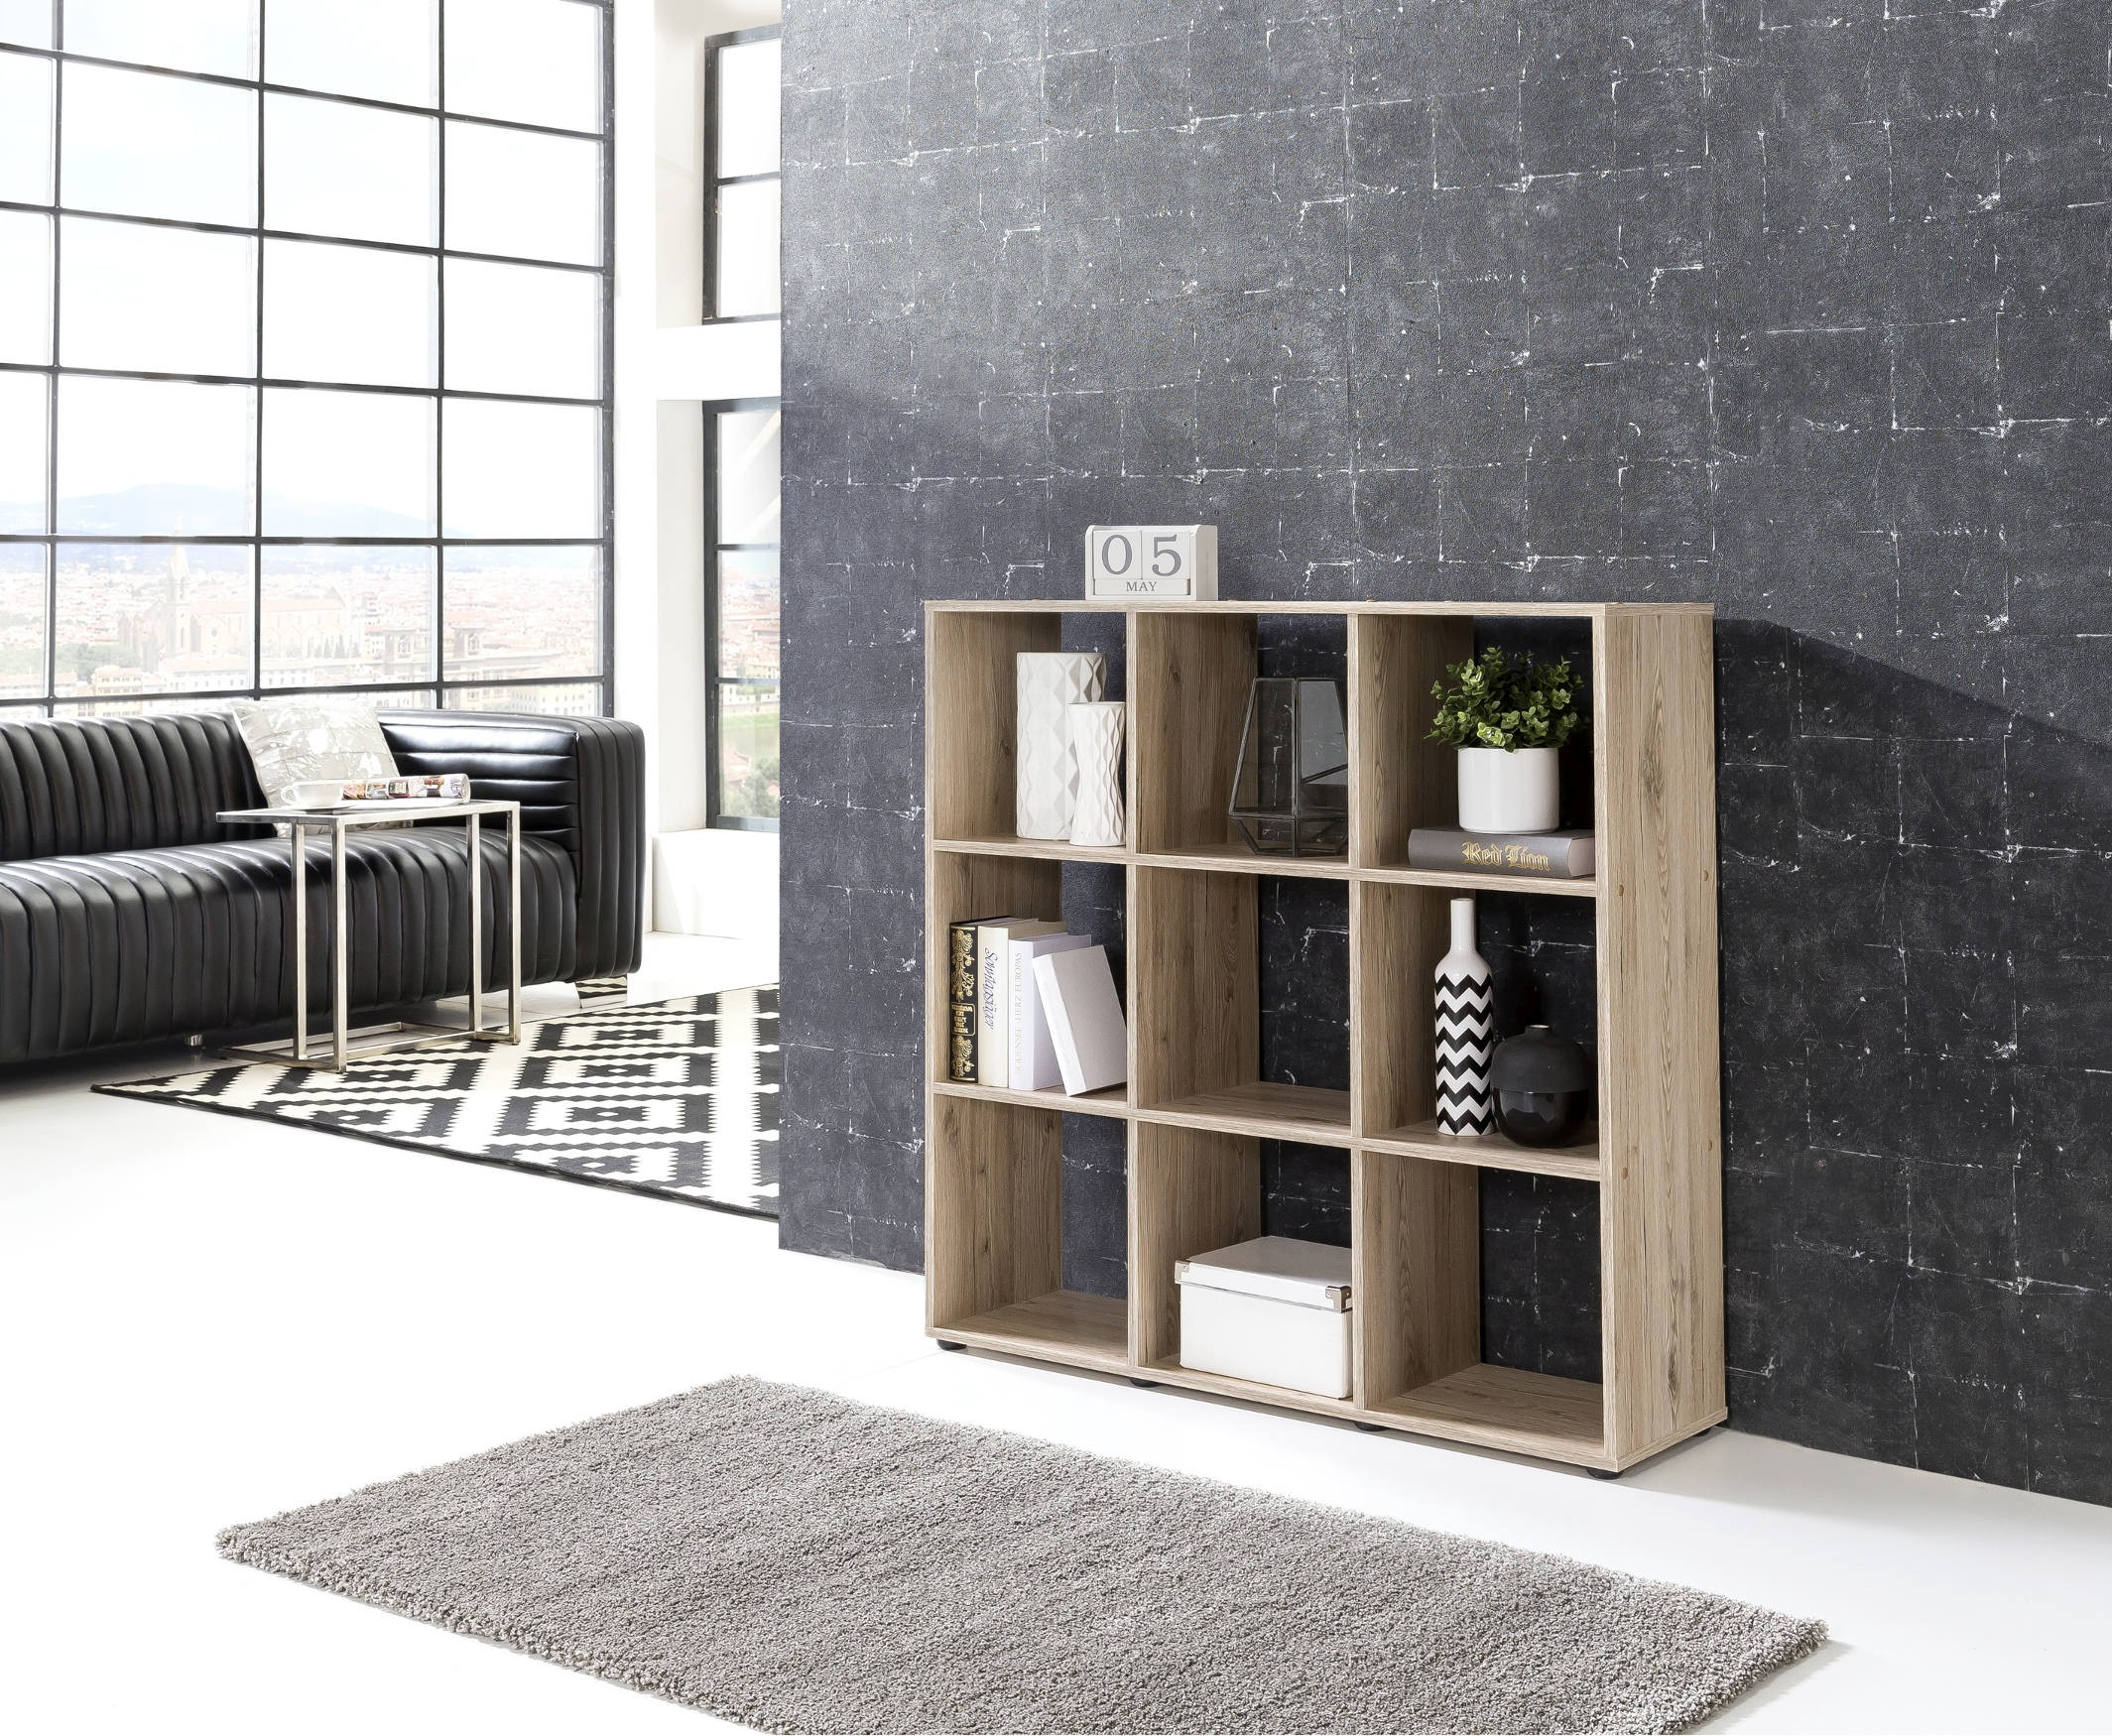 regal maik w rfelsystem 9 f cher eiche sand wohnen regale. Black Bedroom Furniture Sets. Home Design Ideas